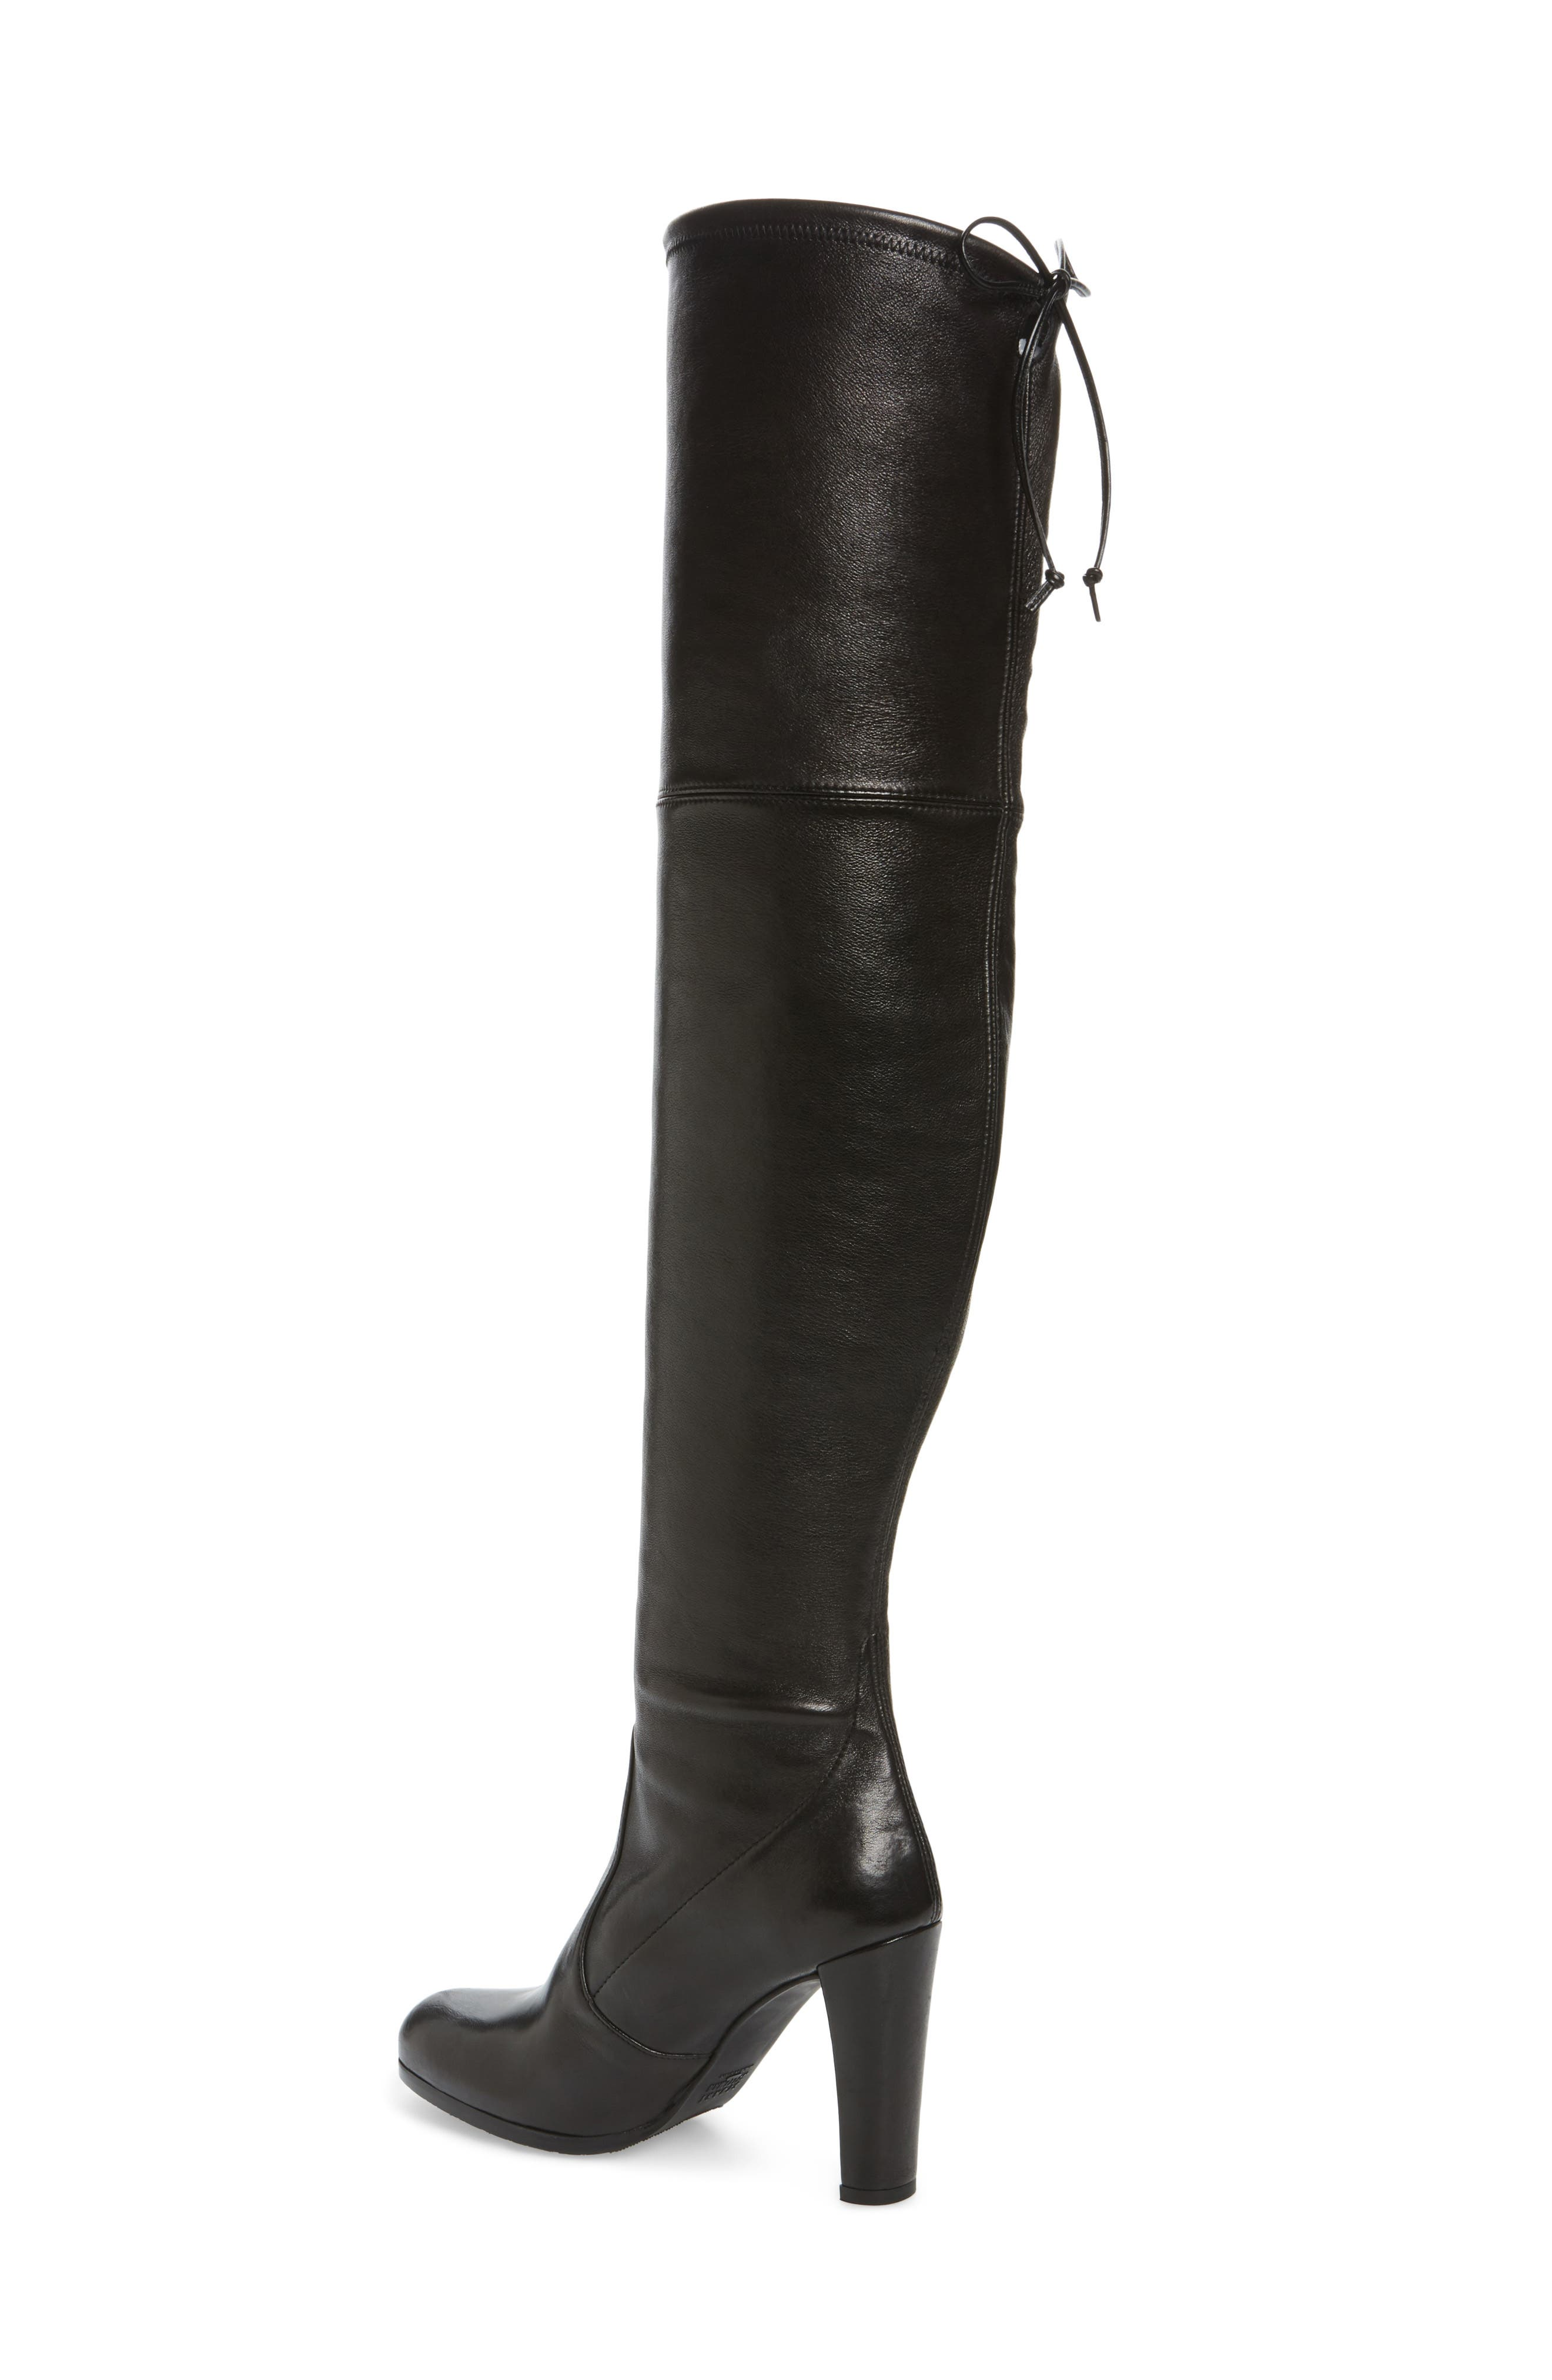 Hiline Over the Knee Boot,                             Alternate thumbnail 2, color,                             Black Nappa